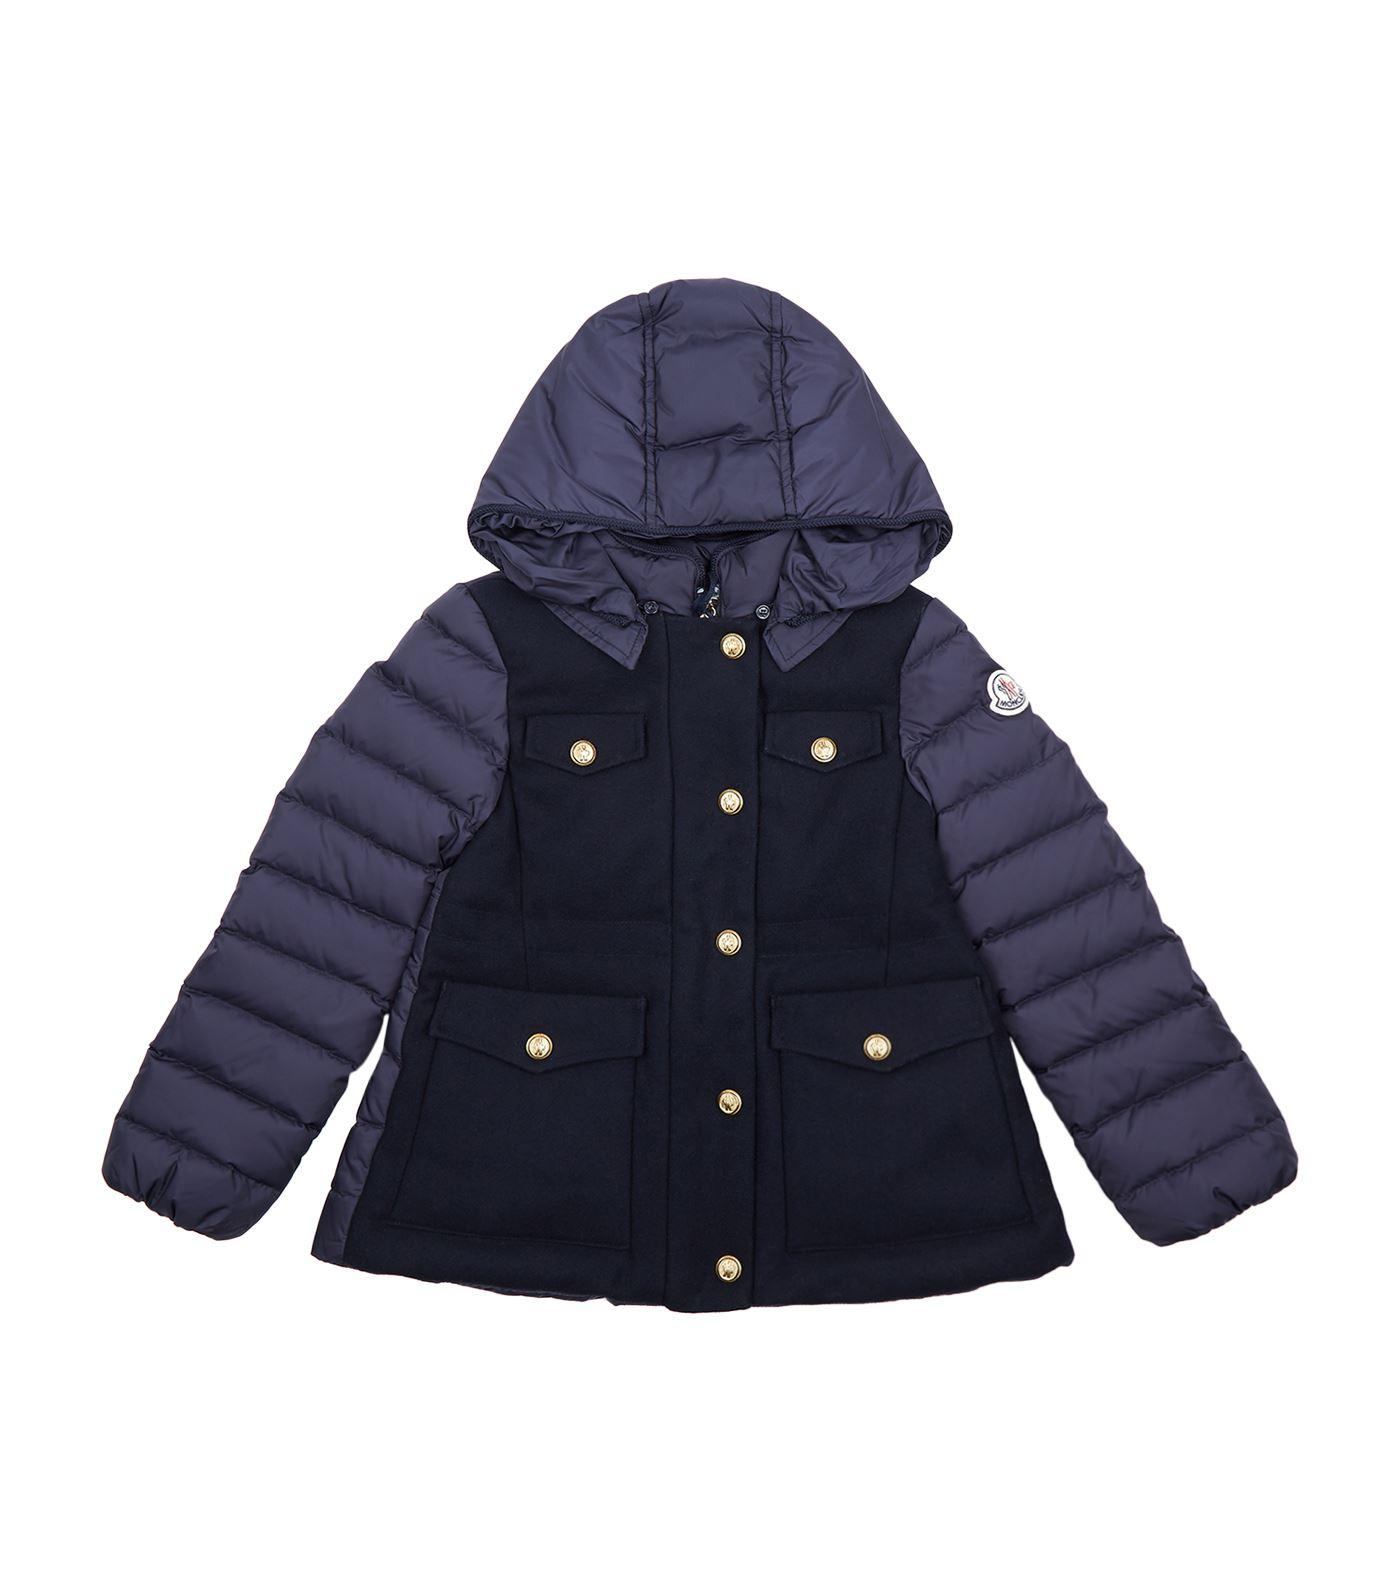 Moncler Admirable Gold Button Coat In Navy